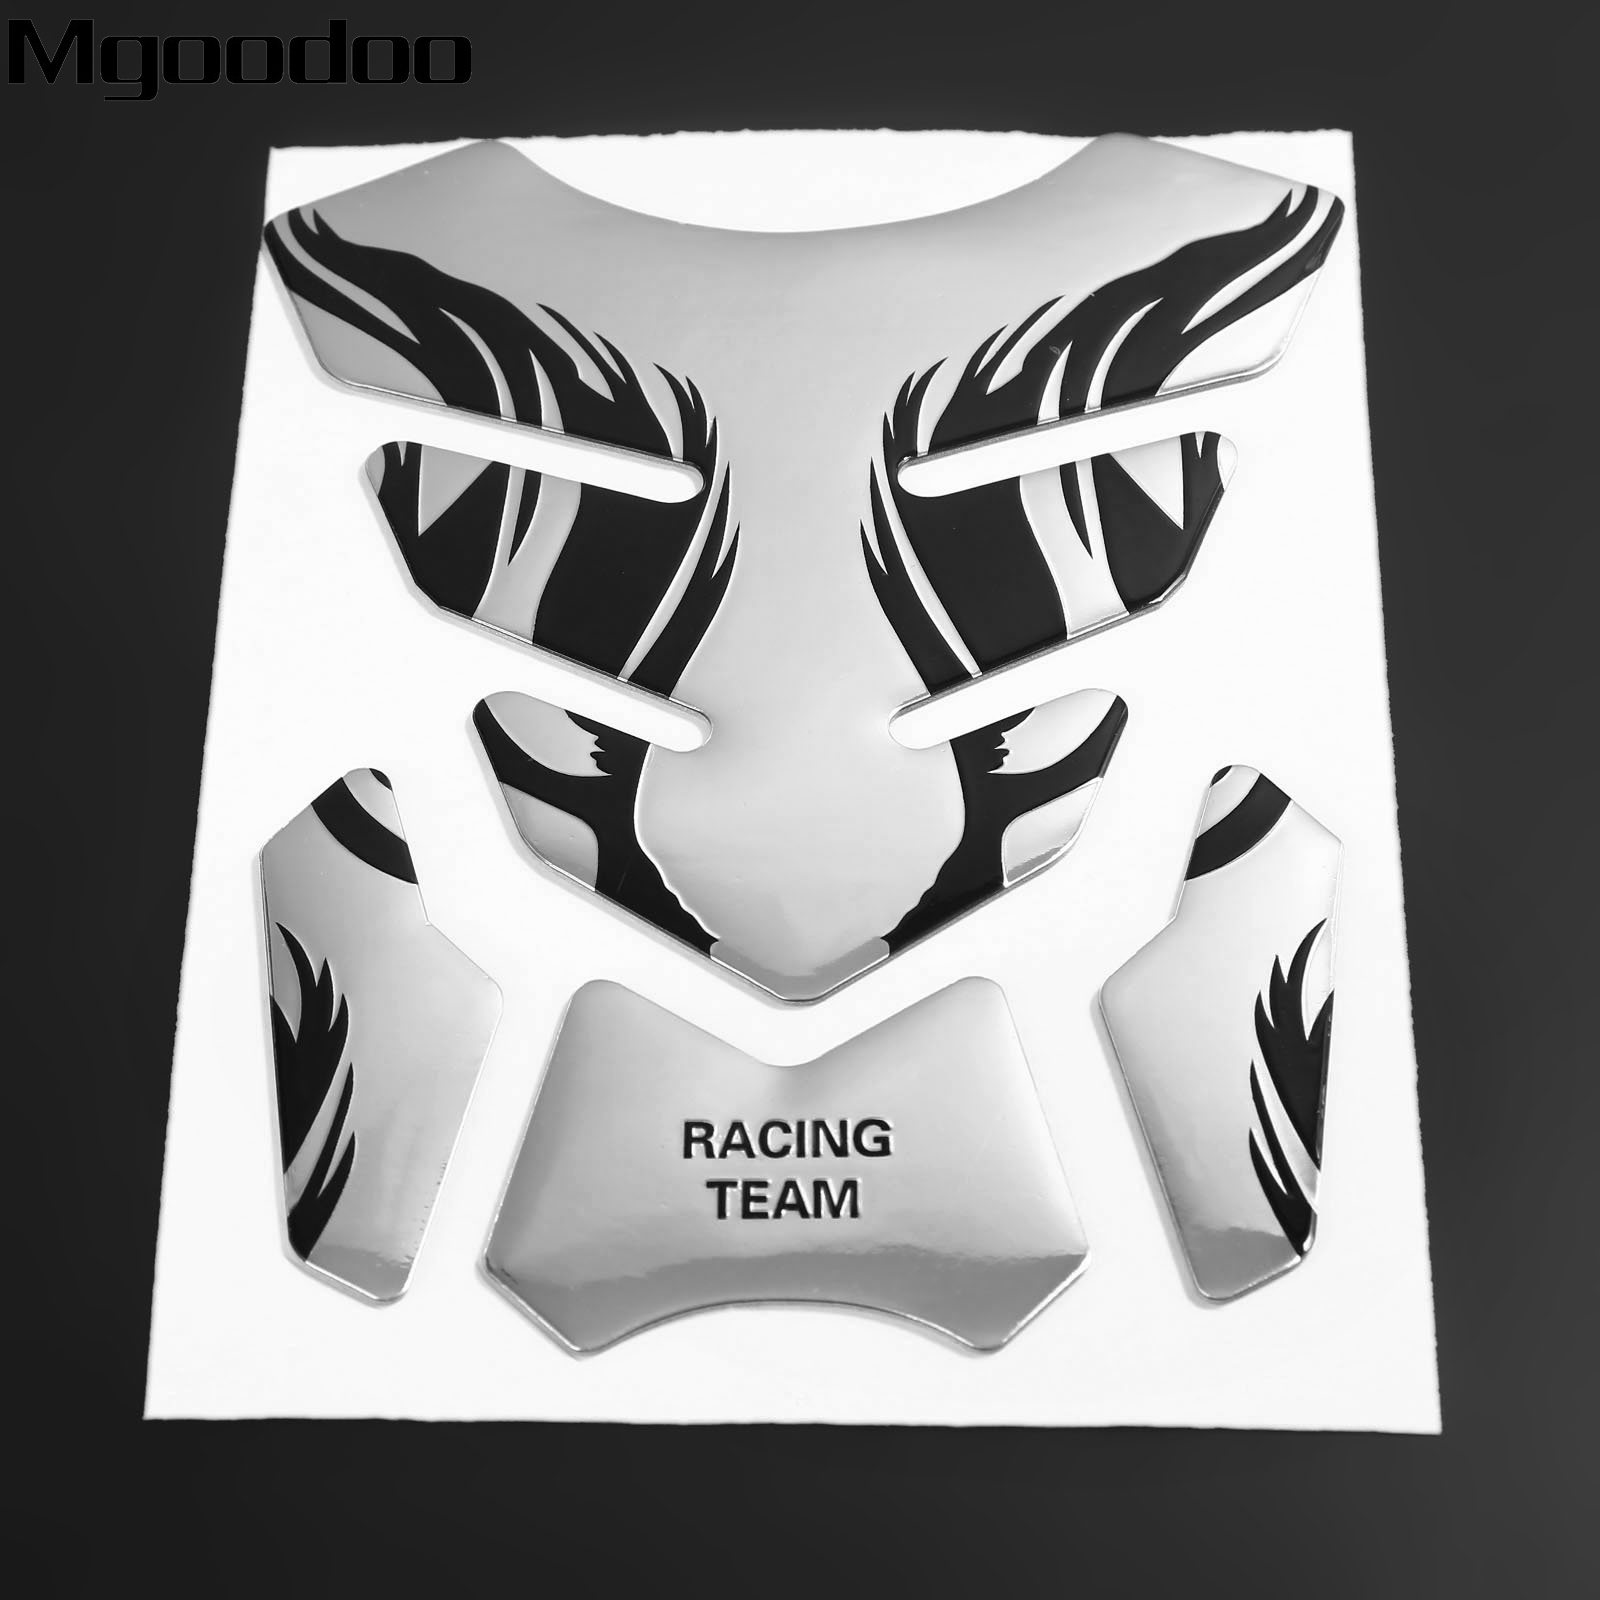 1Pc Motorcycle 3D Fuel Oil Tank Pad Decal Protector Cover Gas Cap Sticker Universal For Honda Harley Yamaha Suzuki Kawasaki honglue motorcycle scooter fuel tank plastic black paint cover oil tank cover for honda dio scooter af27 af28 fuel tank cap